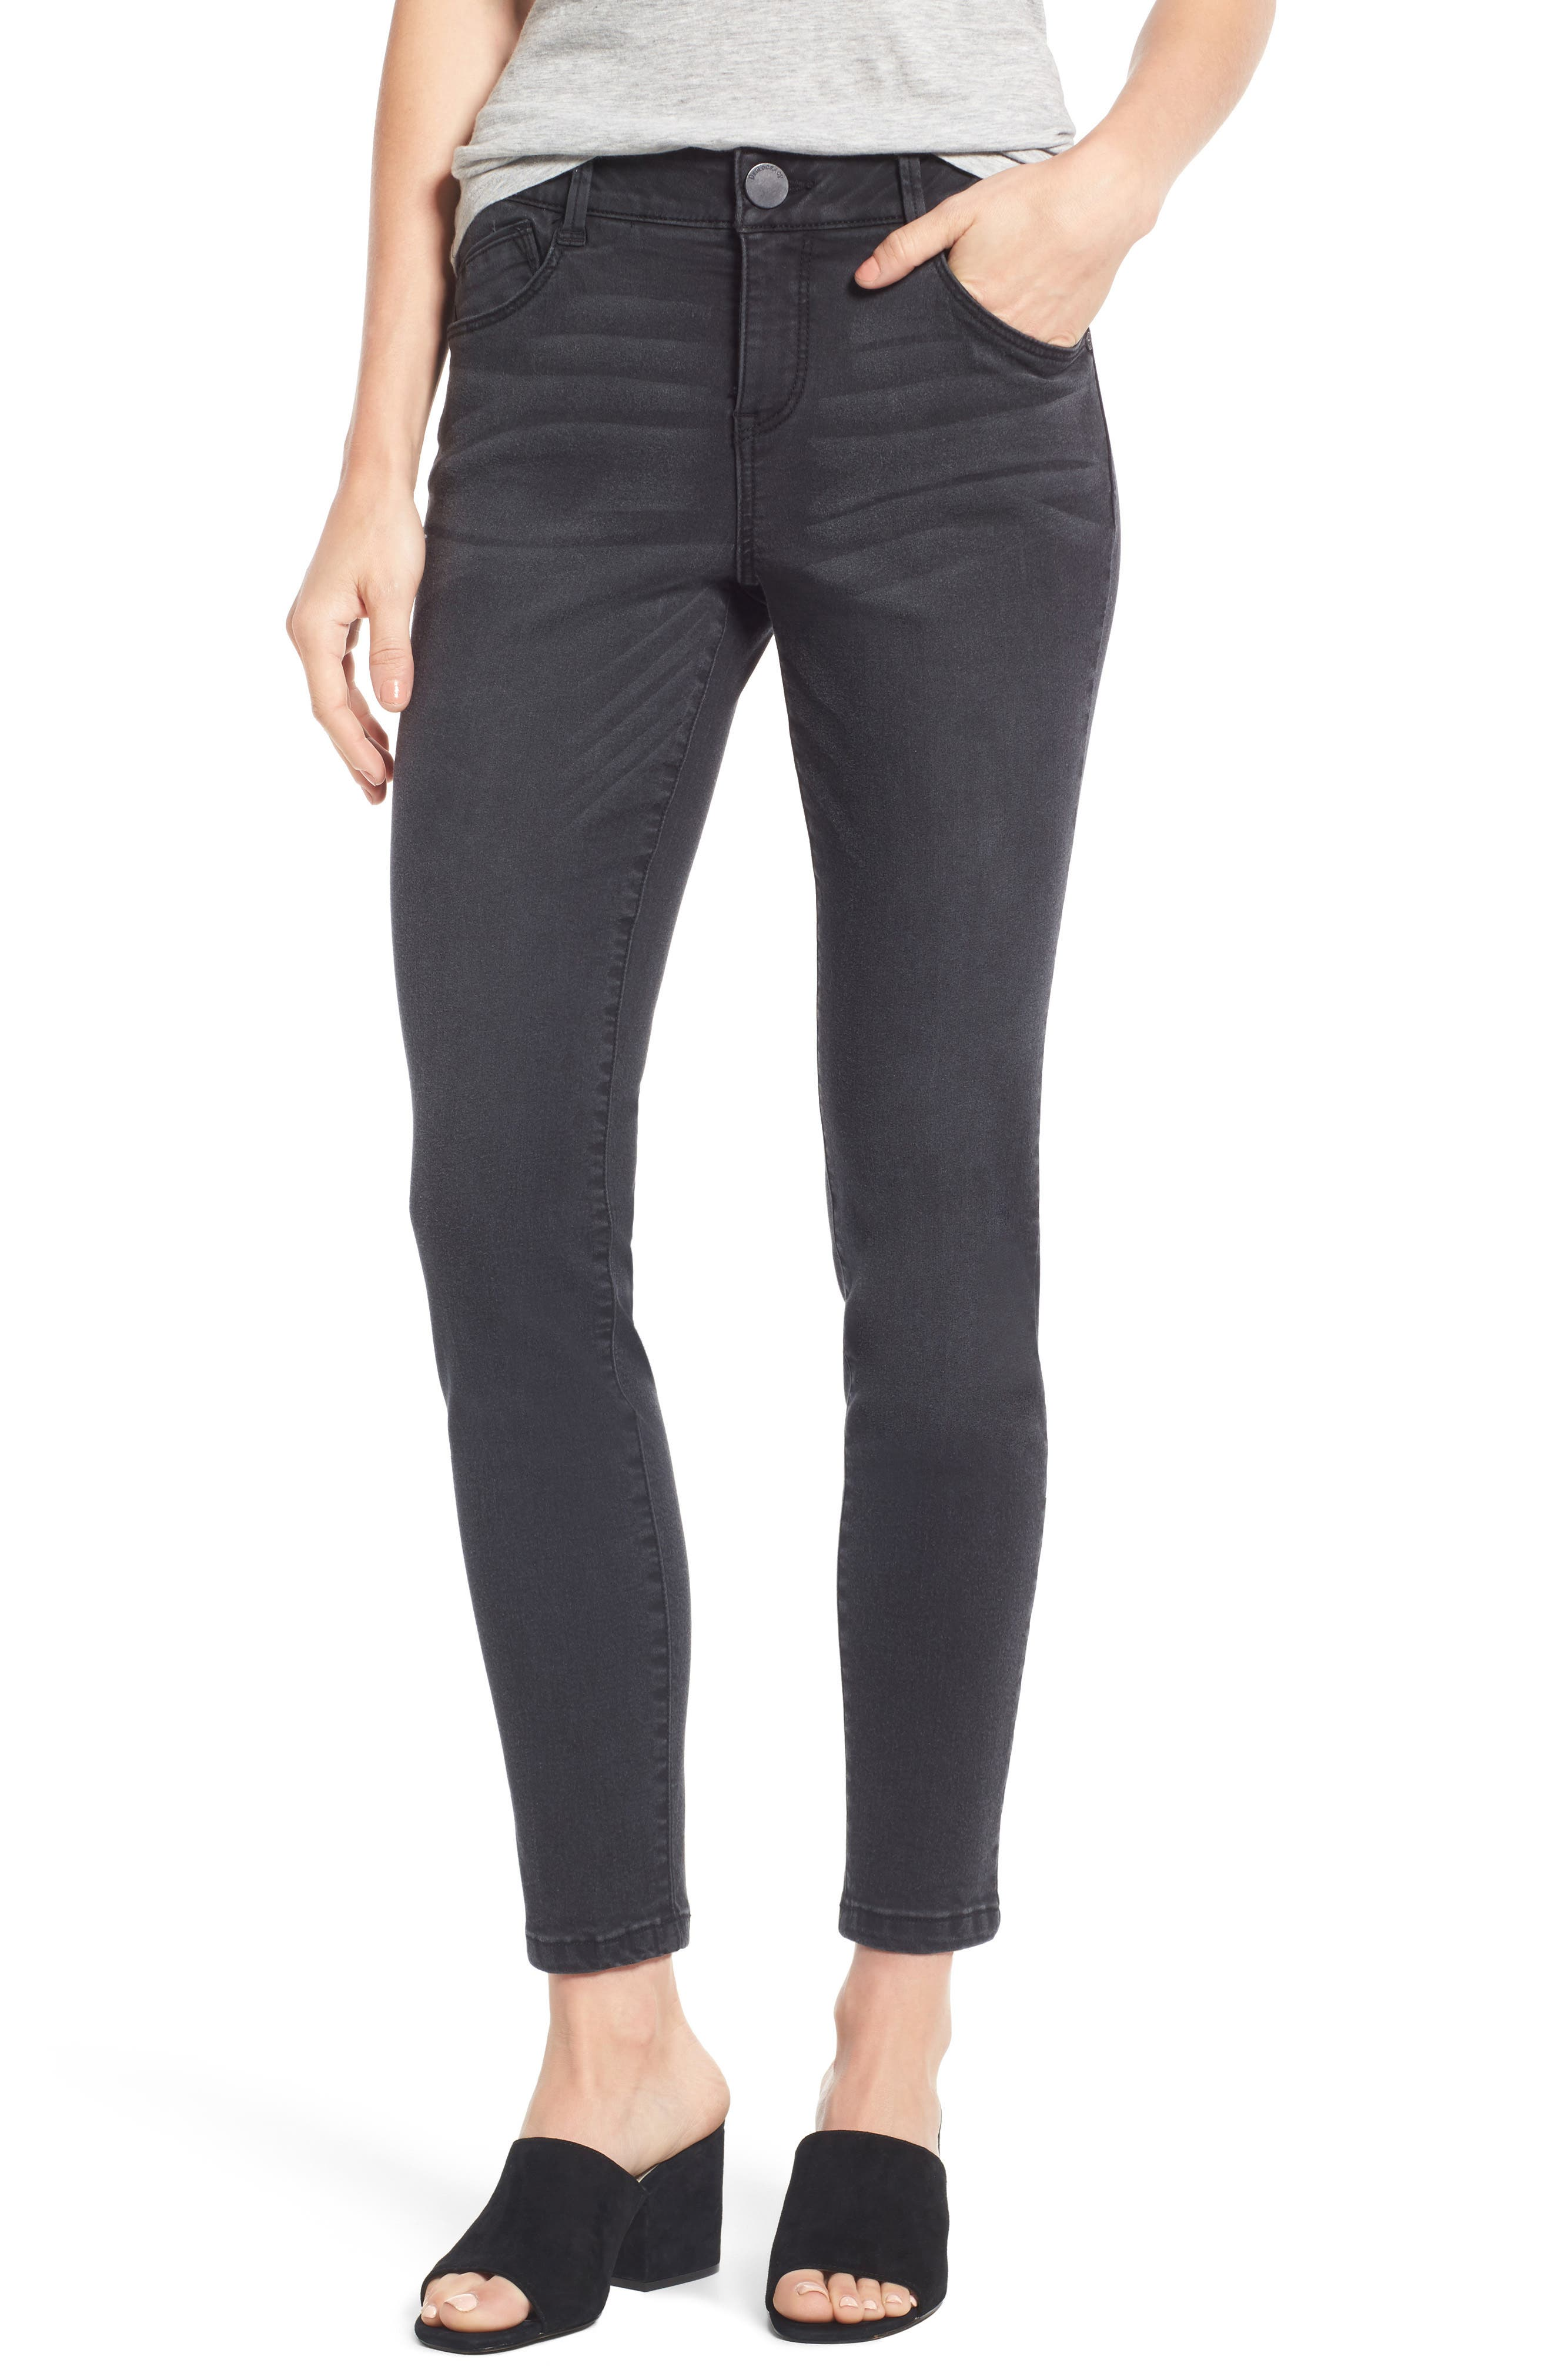 Ab-solution Stretch Ankle Skinny Jeans,                             Main thumbnail 1, color,                             020